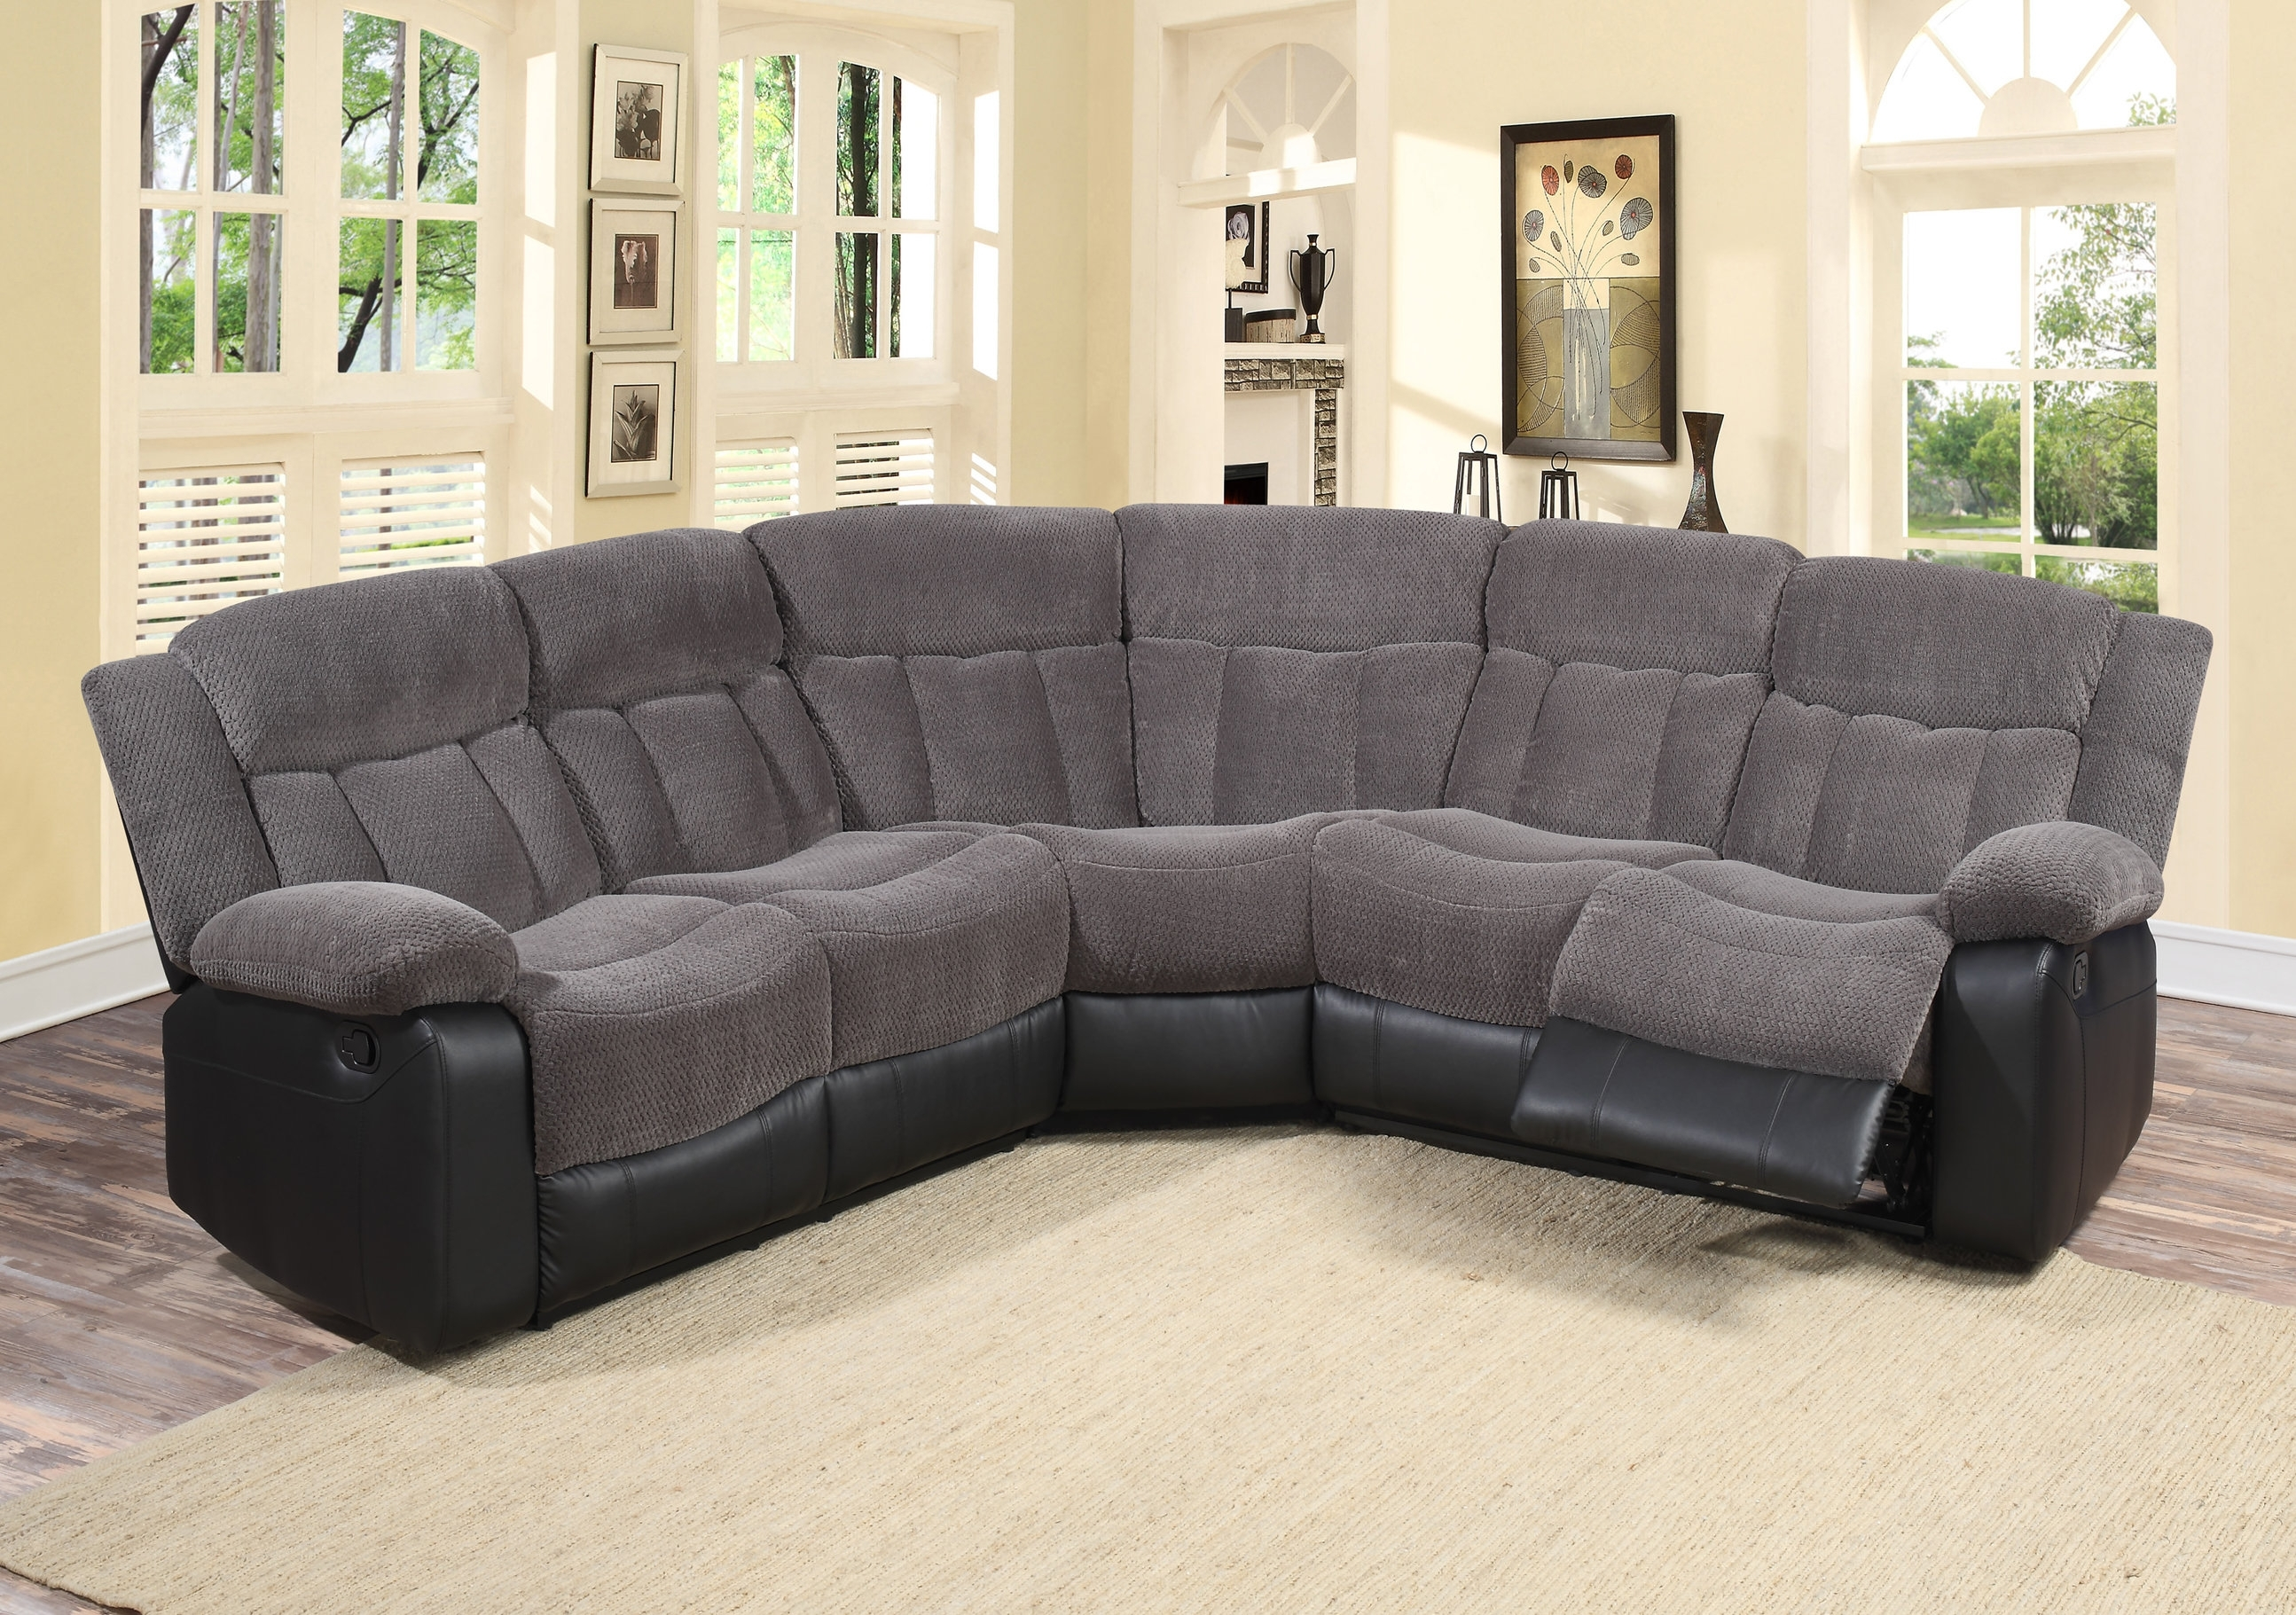 Reclining Sectionals You'll Love | Wayfair with regard to Reclining Sectional Sofas (Image 10 of 10)